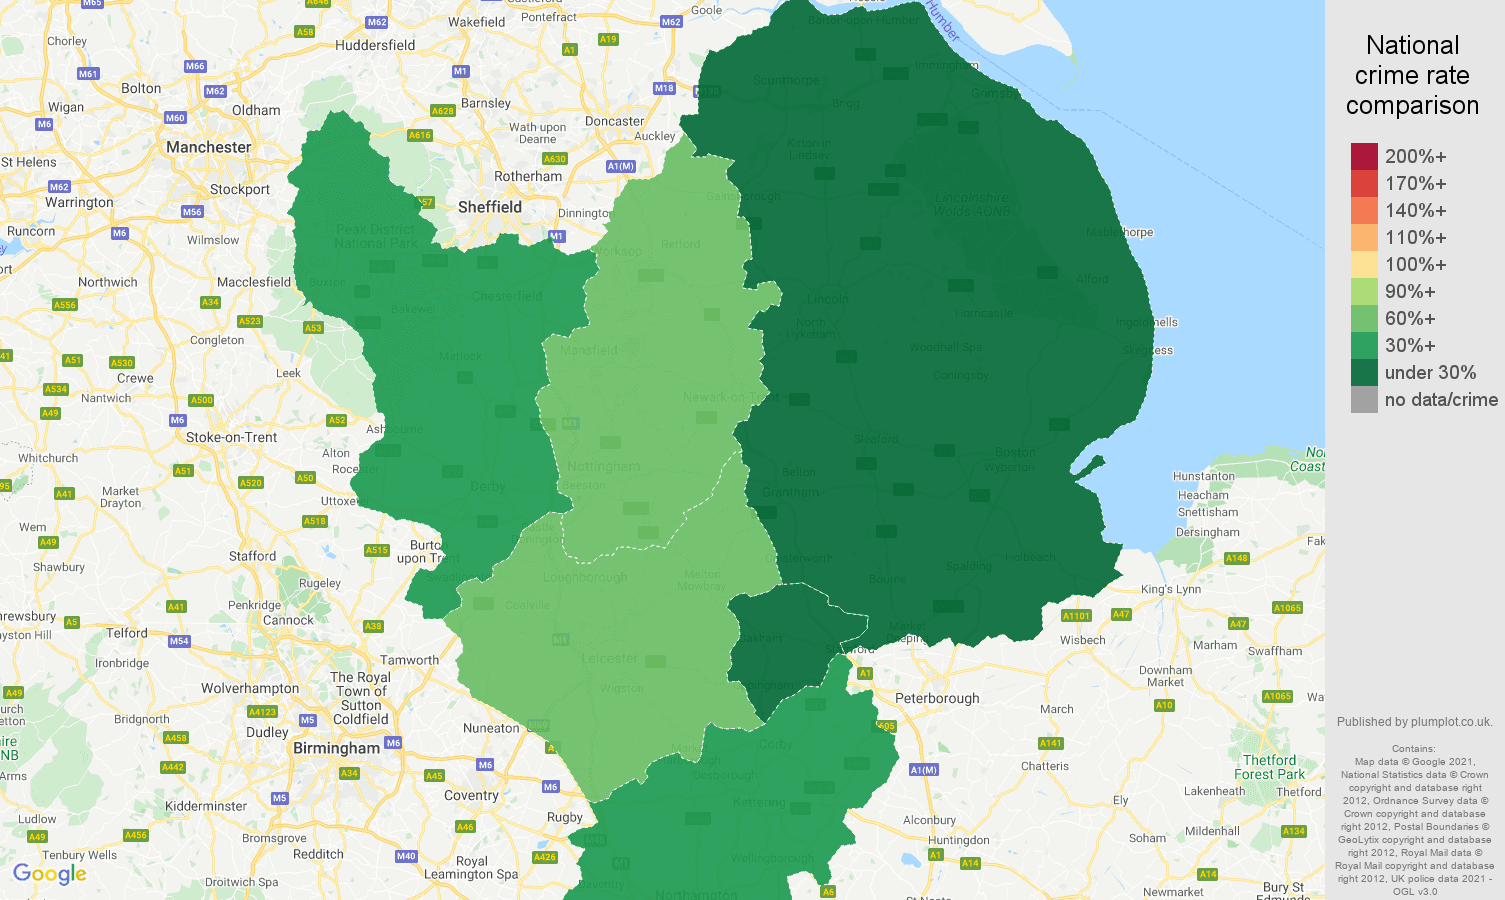 East Midlands theft from the person crime rate comparison map